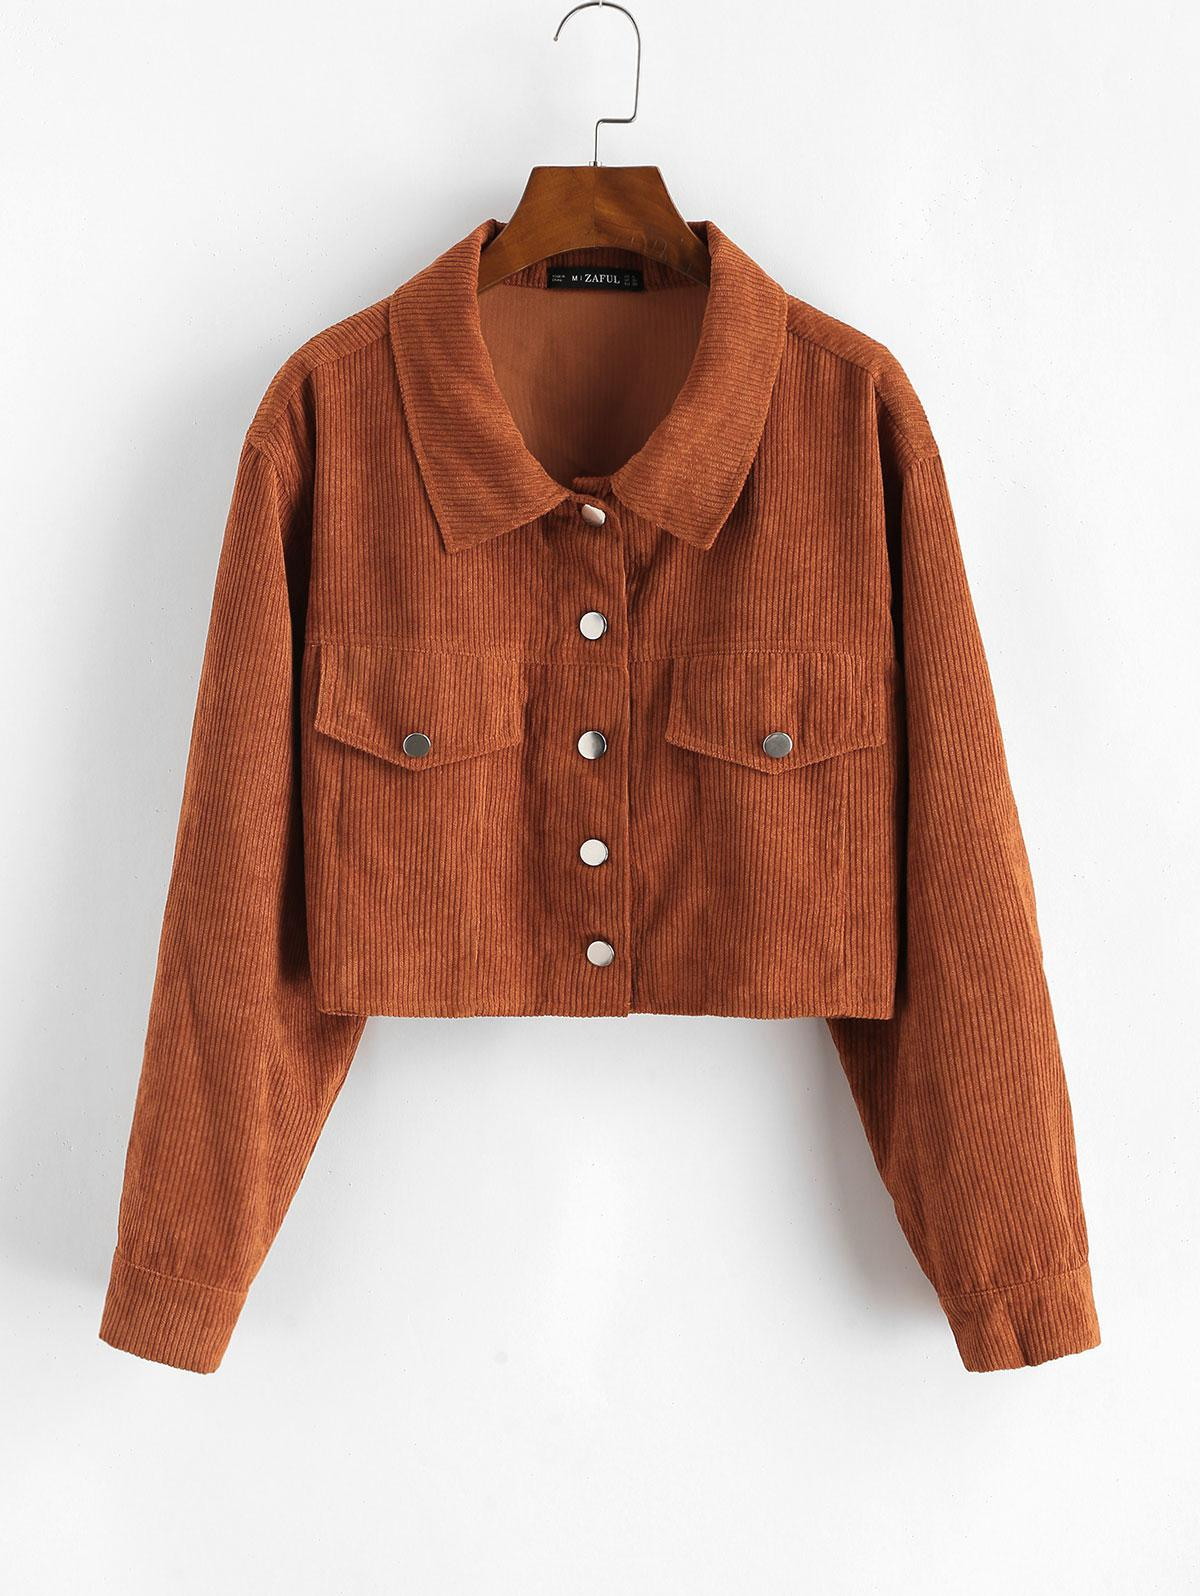 ZAFUL Corduroy Flap Detail Single Breasted Jacket